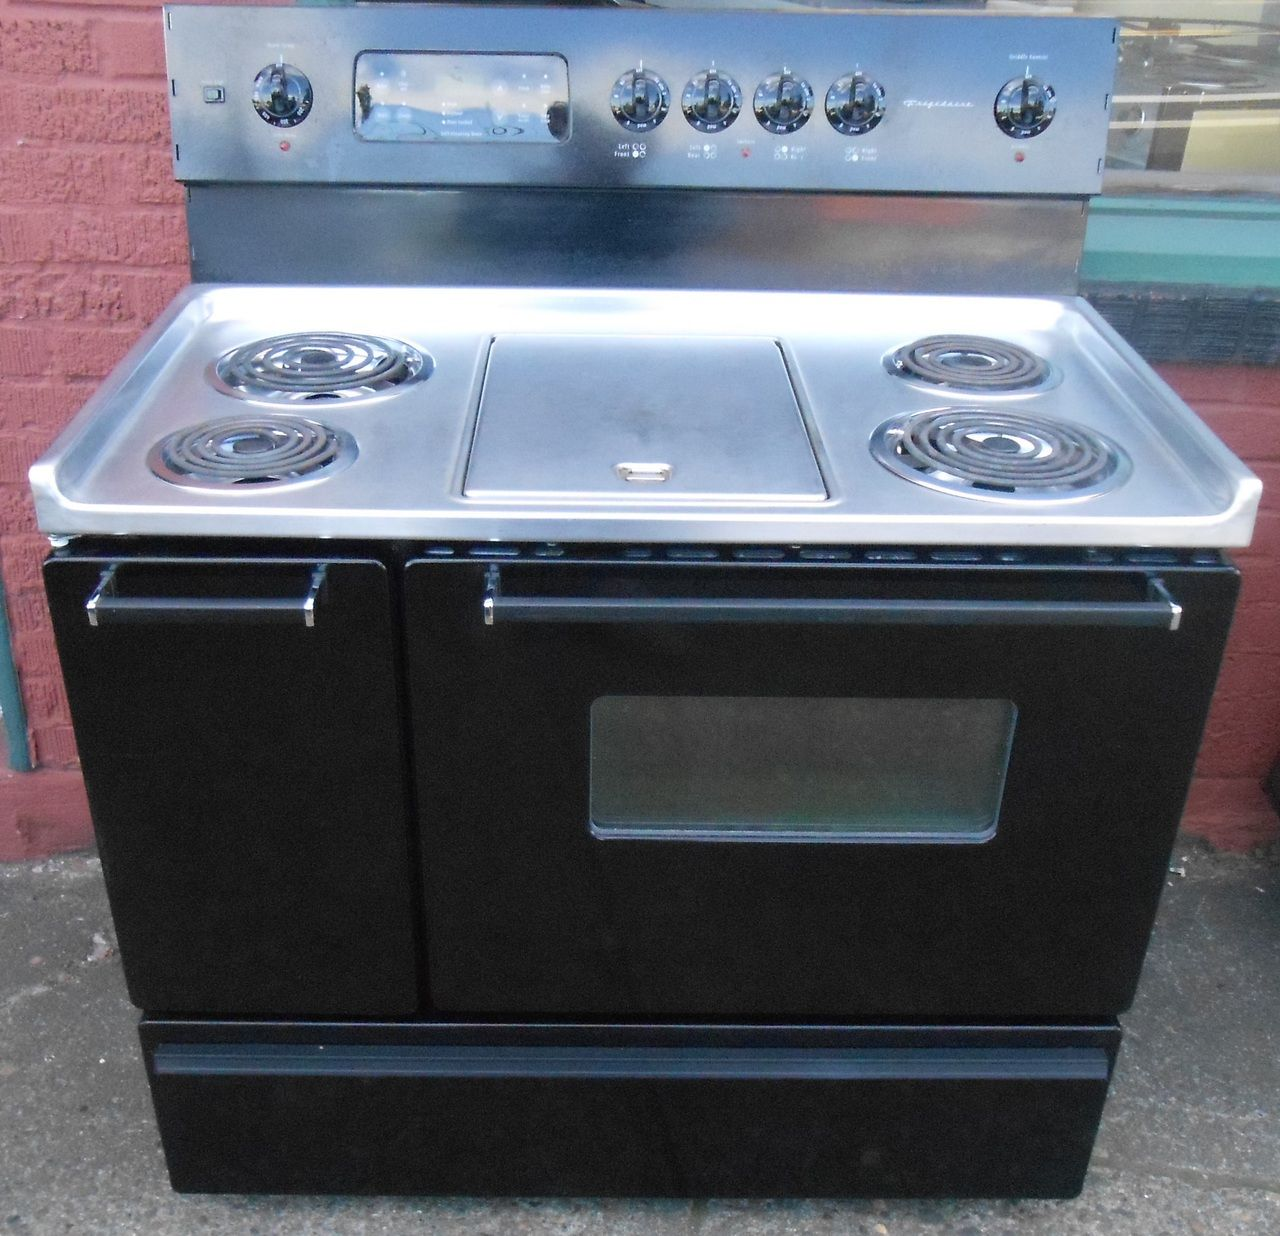 Liance City Frigidaire 40 Inch Electric Range Double Oven 4 Burner With Center Griddle 2